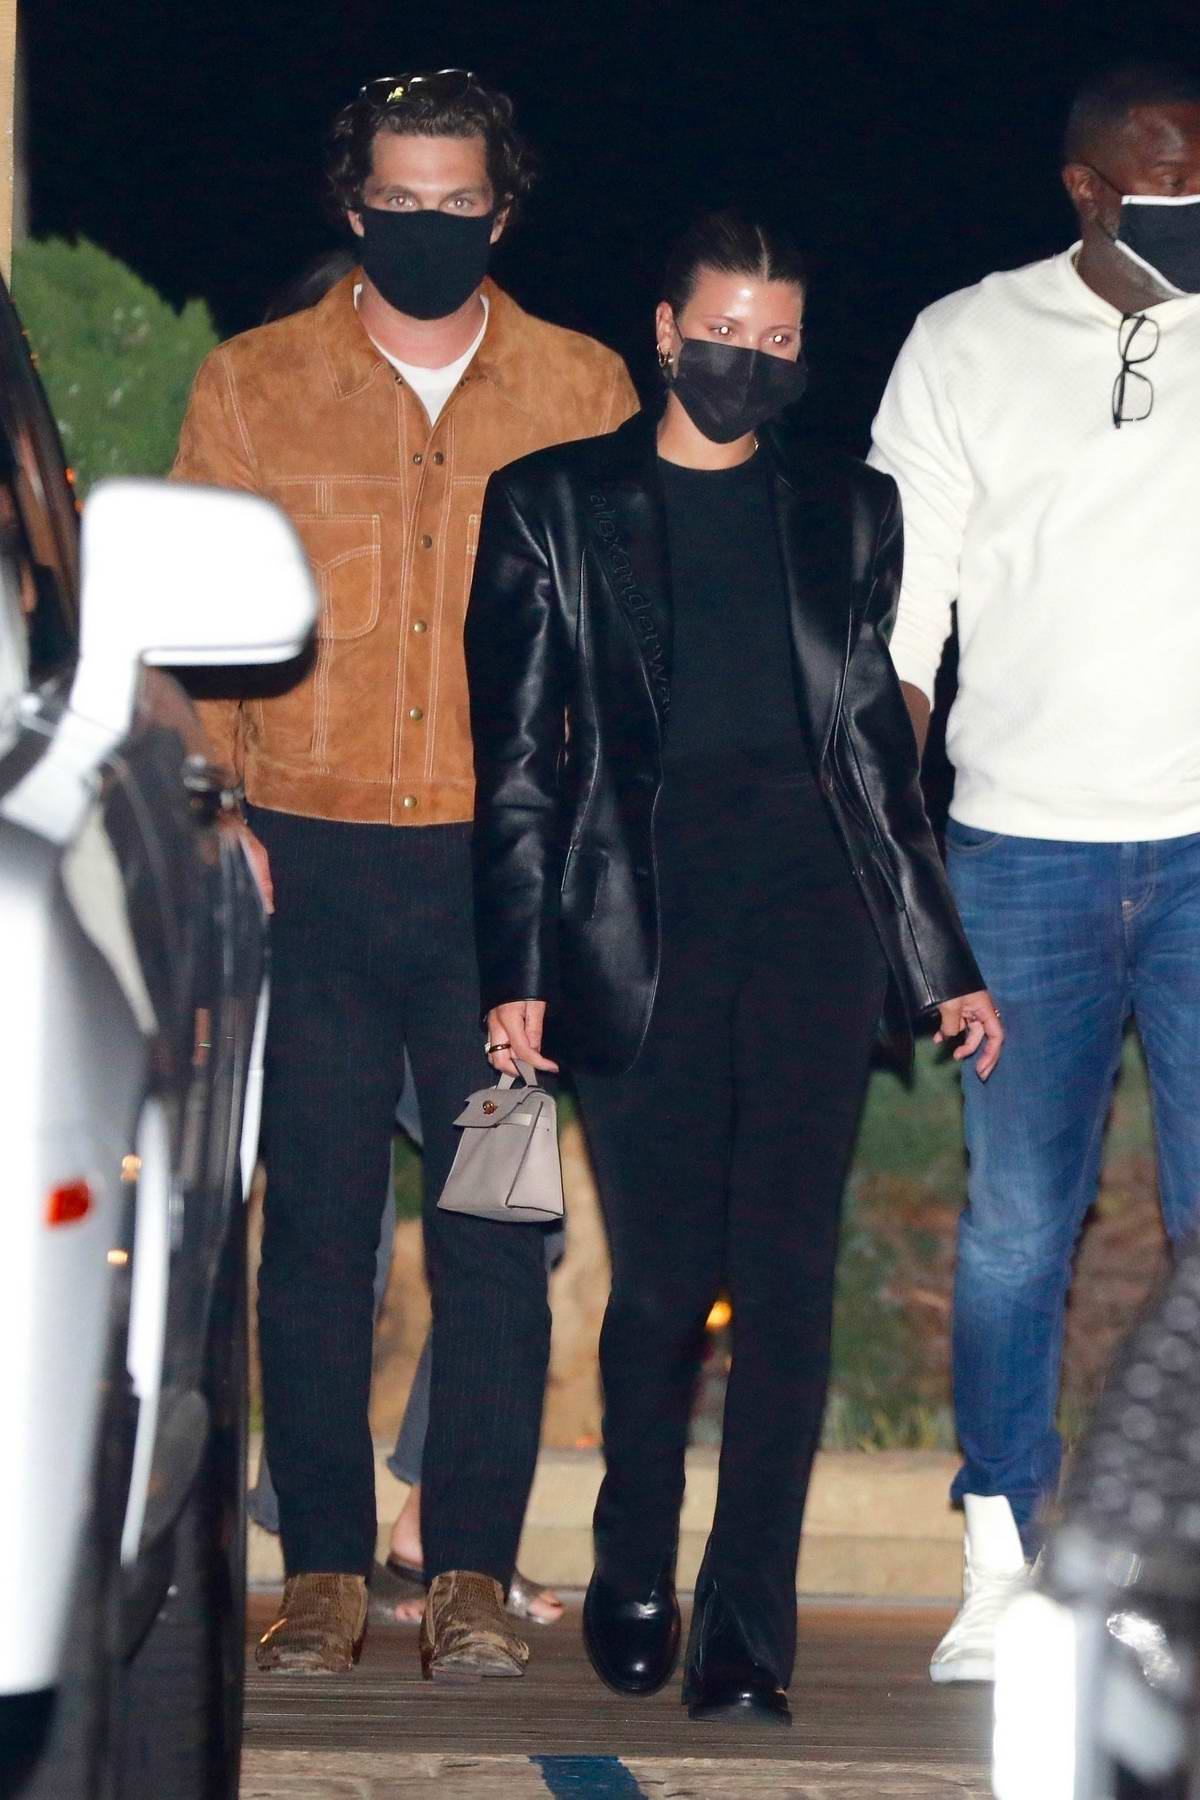 Sofia Richie keeps a low profile leaving dinner with a mystery man at Nobu in Malibu, California